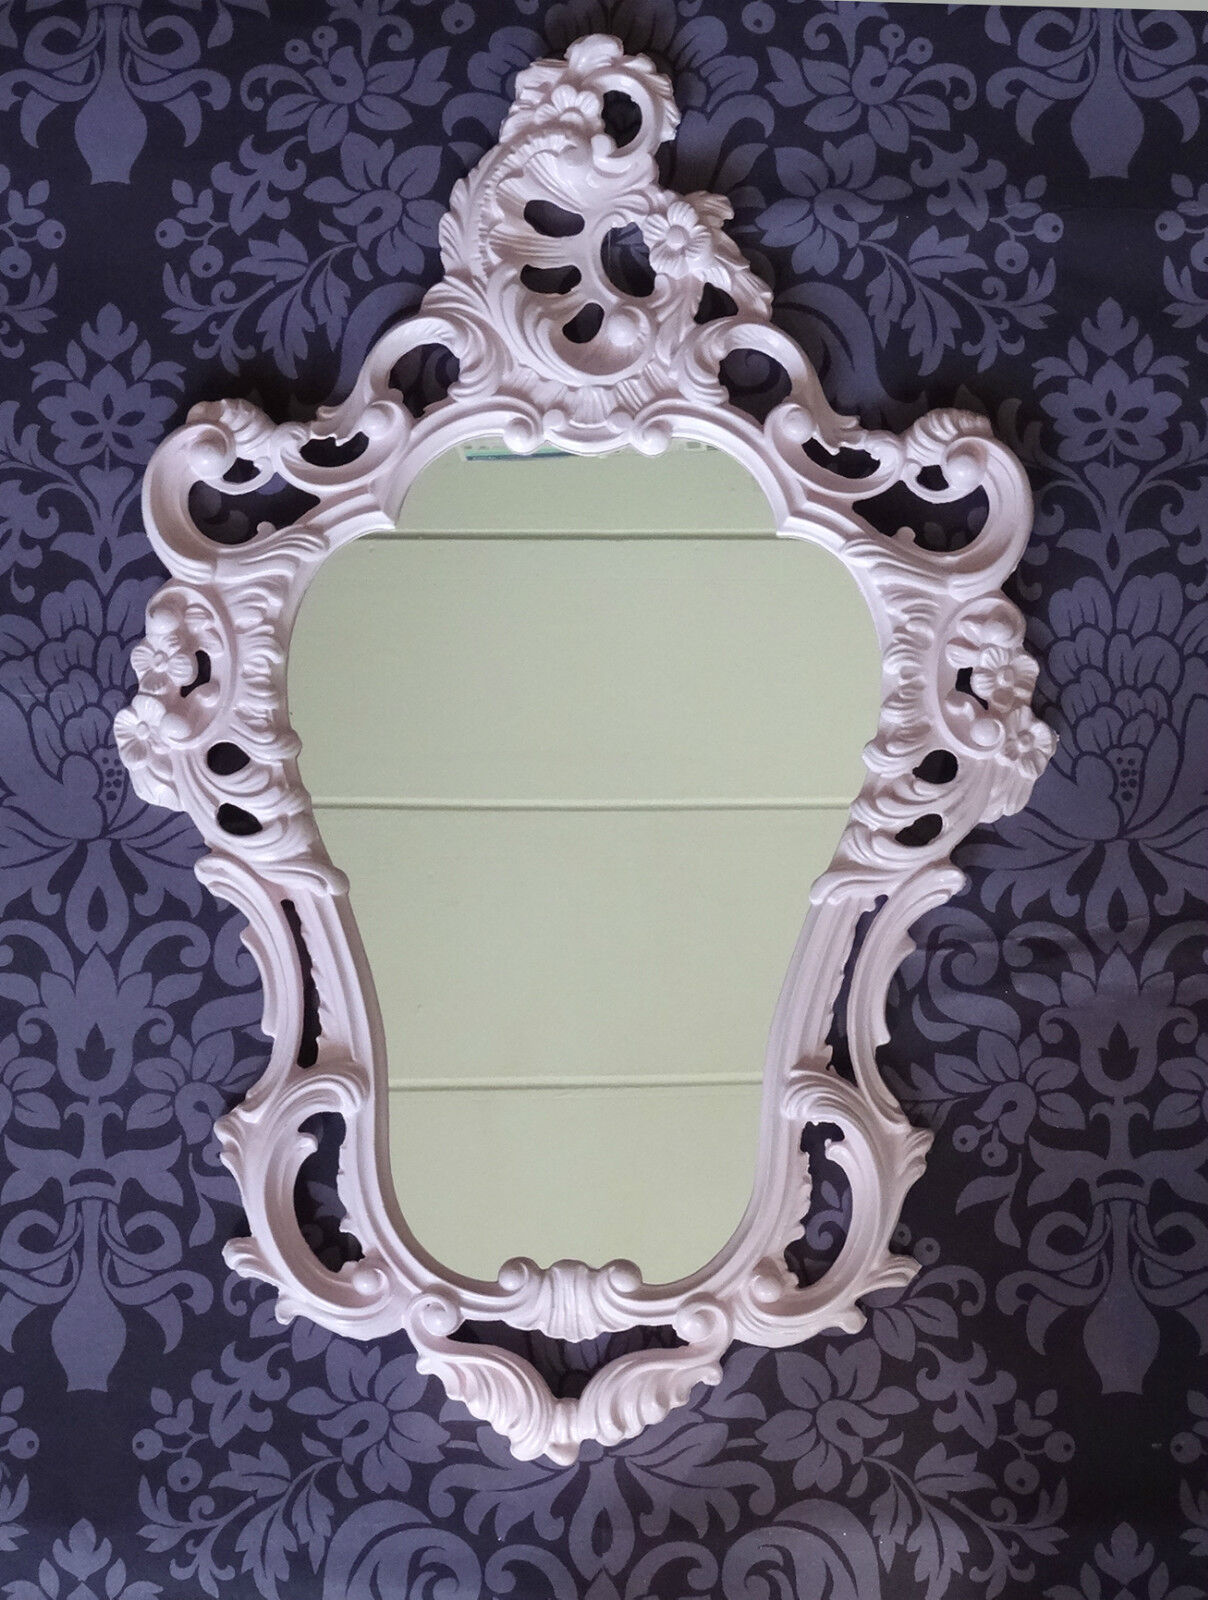 Exclusive wall mirror rose pink baroque reproduction for Deco baroque